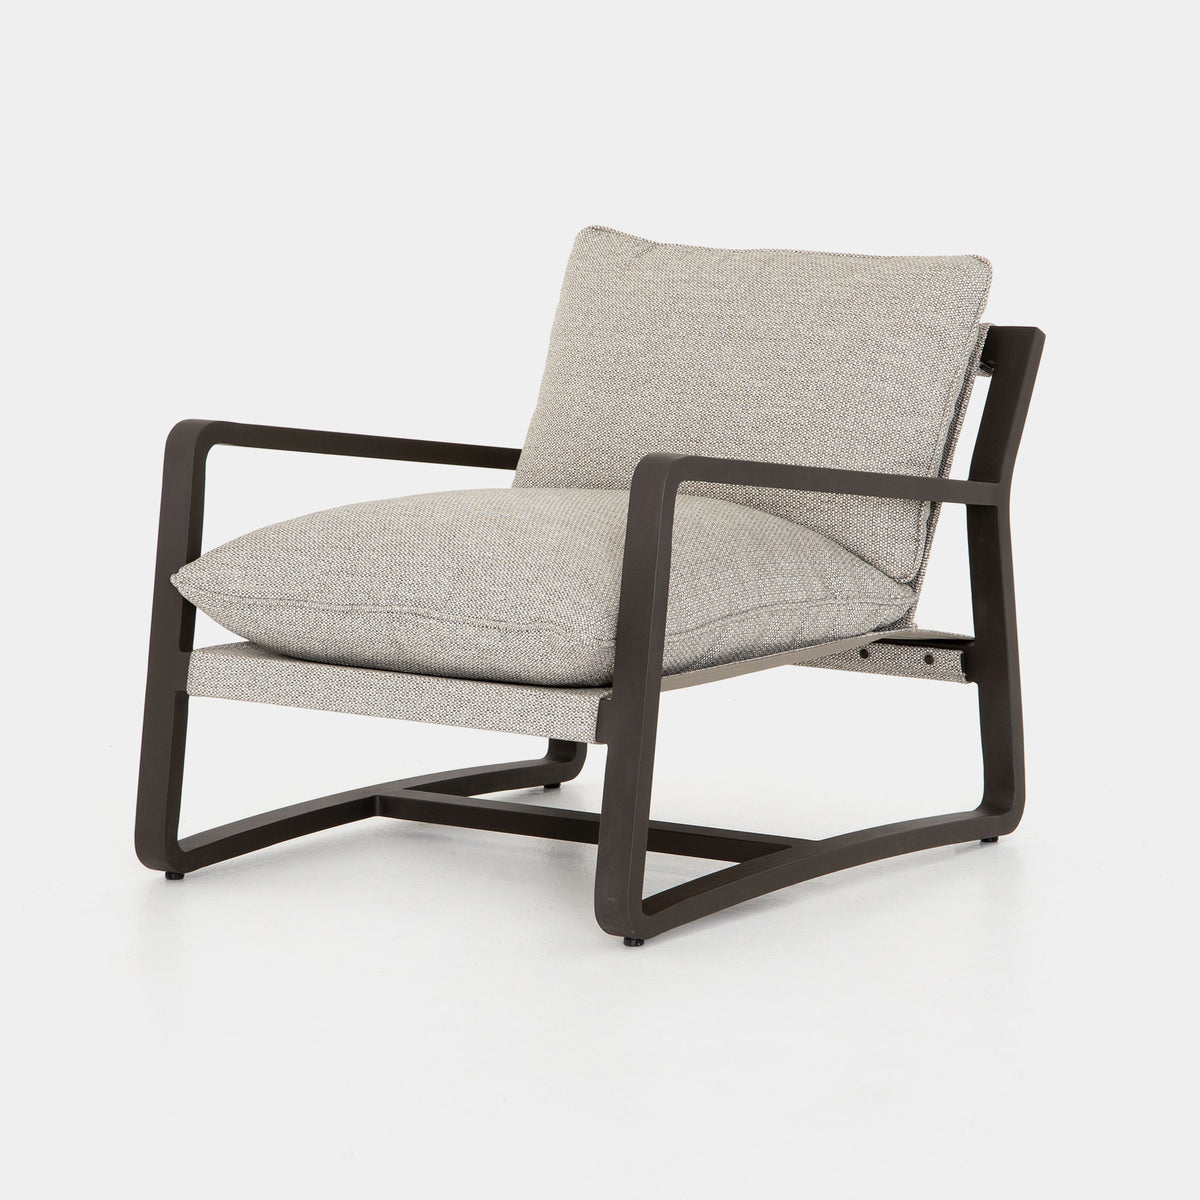 Load image into Gallery viewer, Kelan Outdoor Chair - Outdoor Furniture - Lounge Chairs – Shoppe Amber Interiors